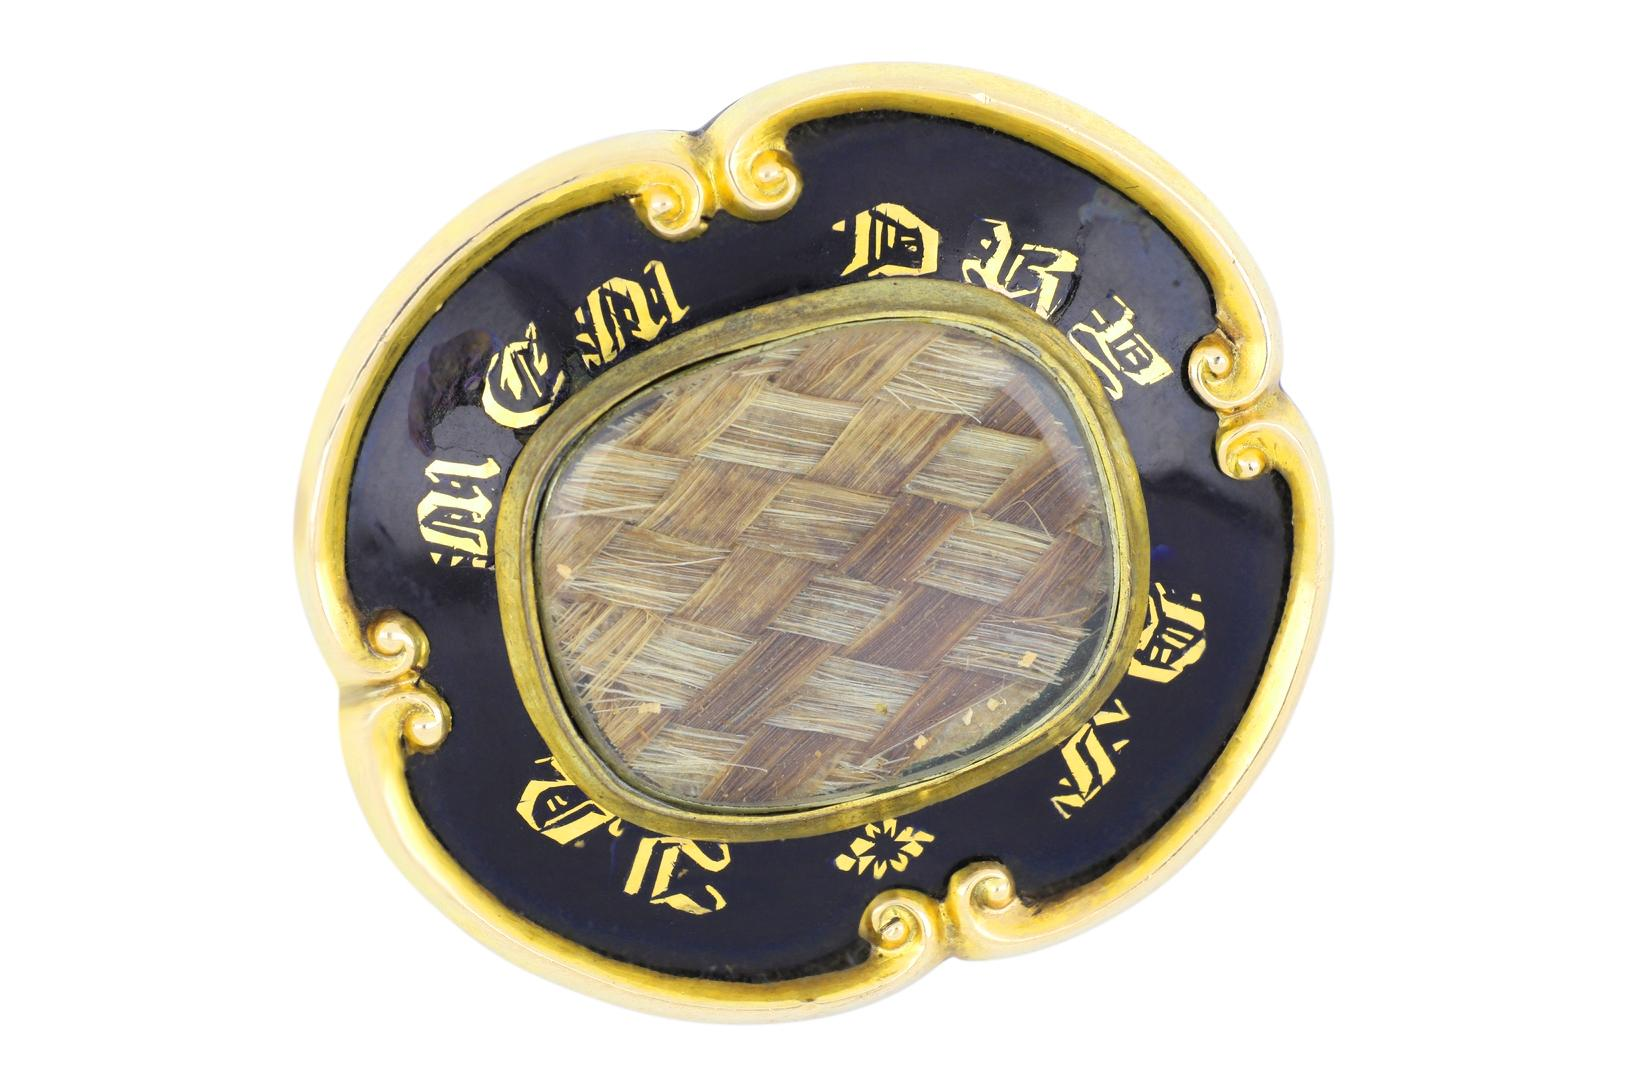 Victorian gold and black enamel with hair mourning brooch, 40 x 35 mm, weight 16.00 grams